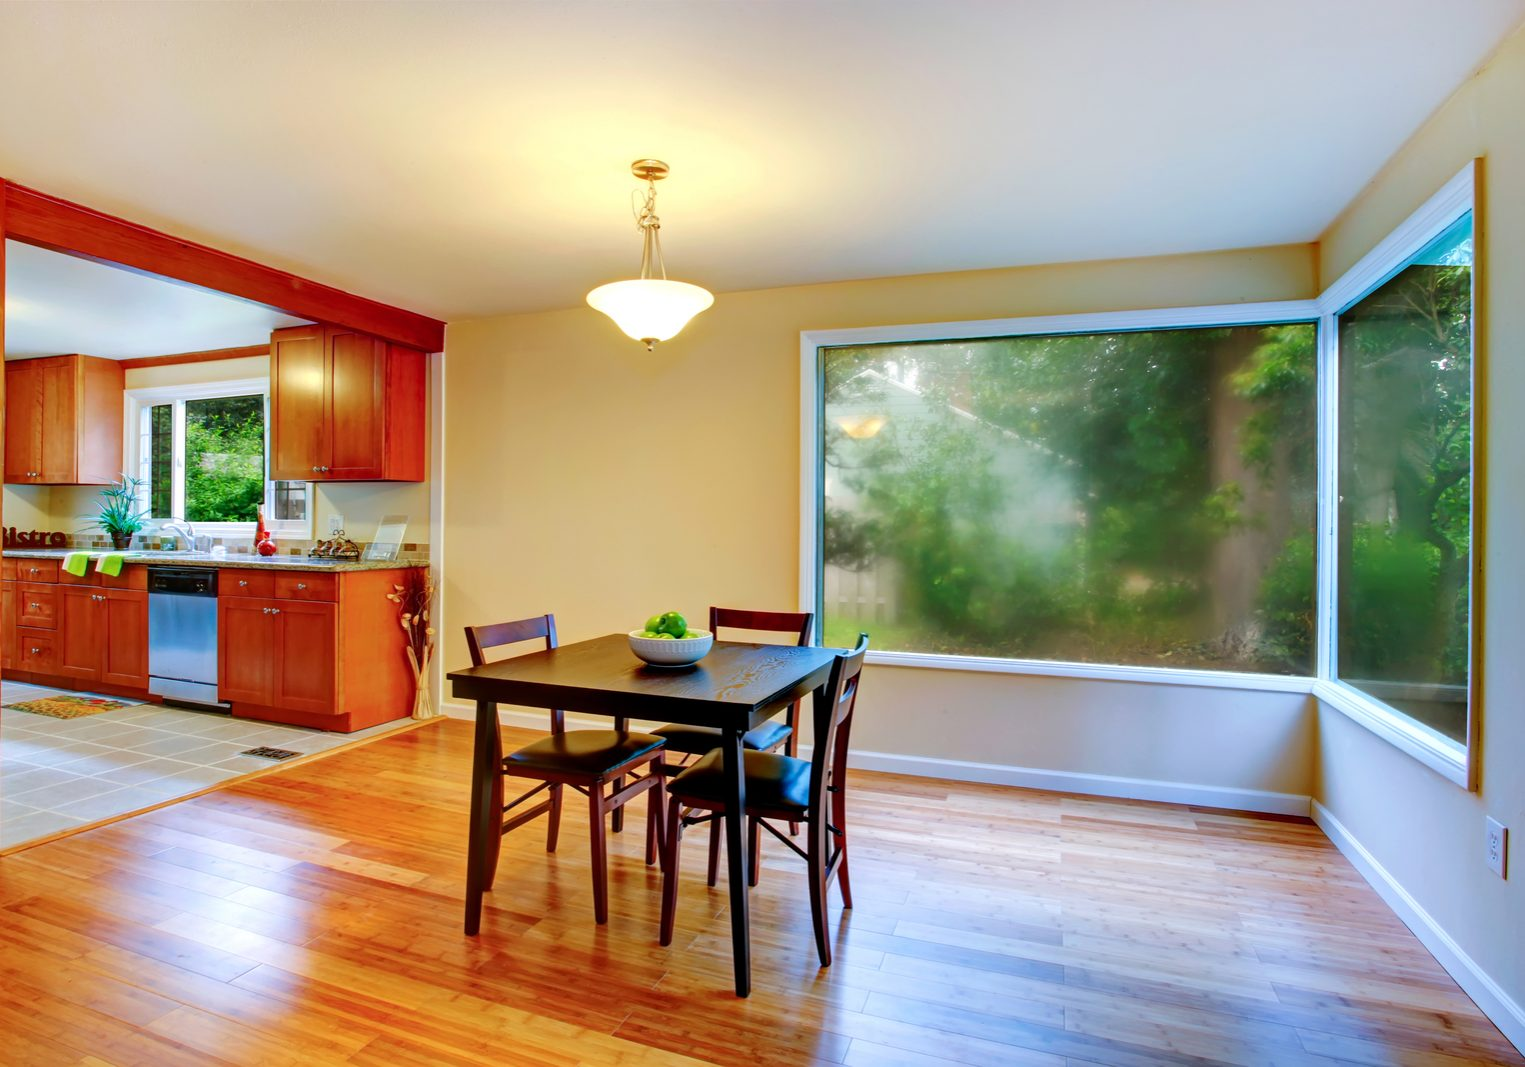 a dining area with wood flooring